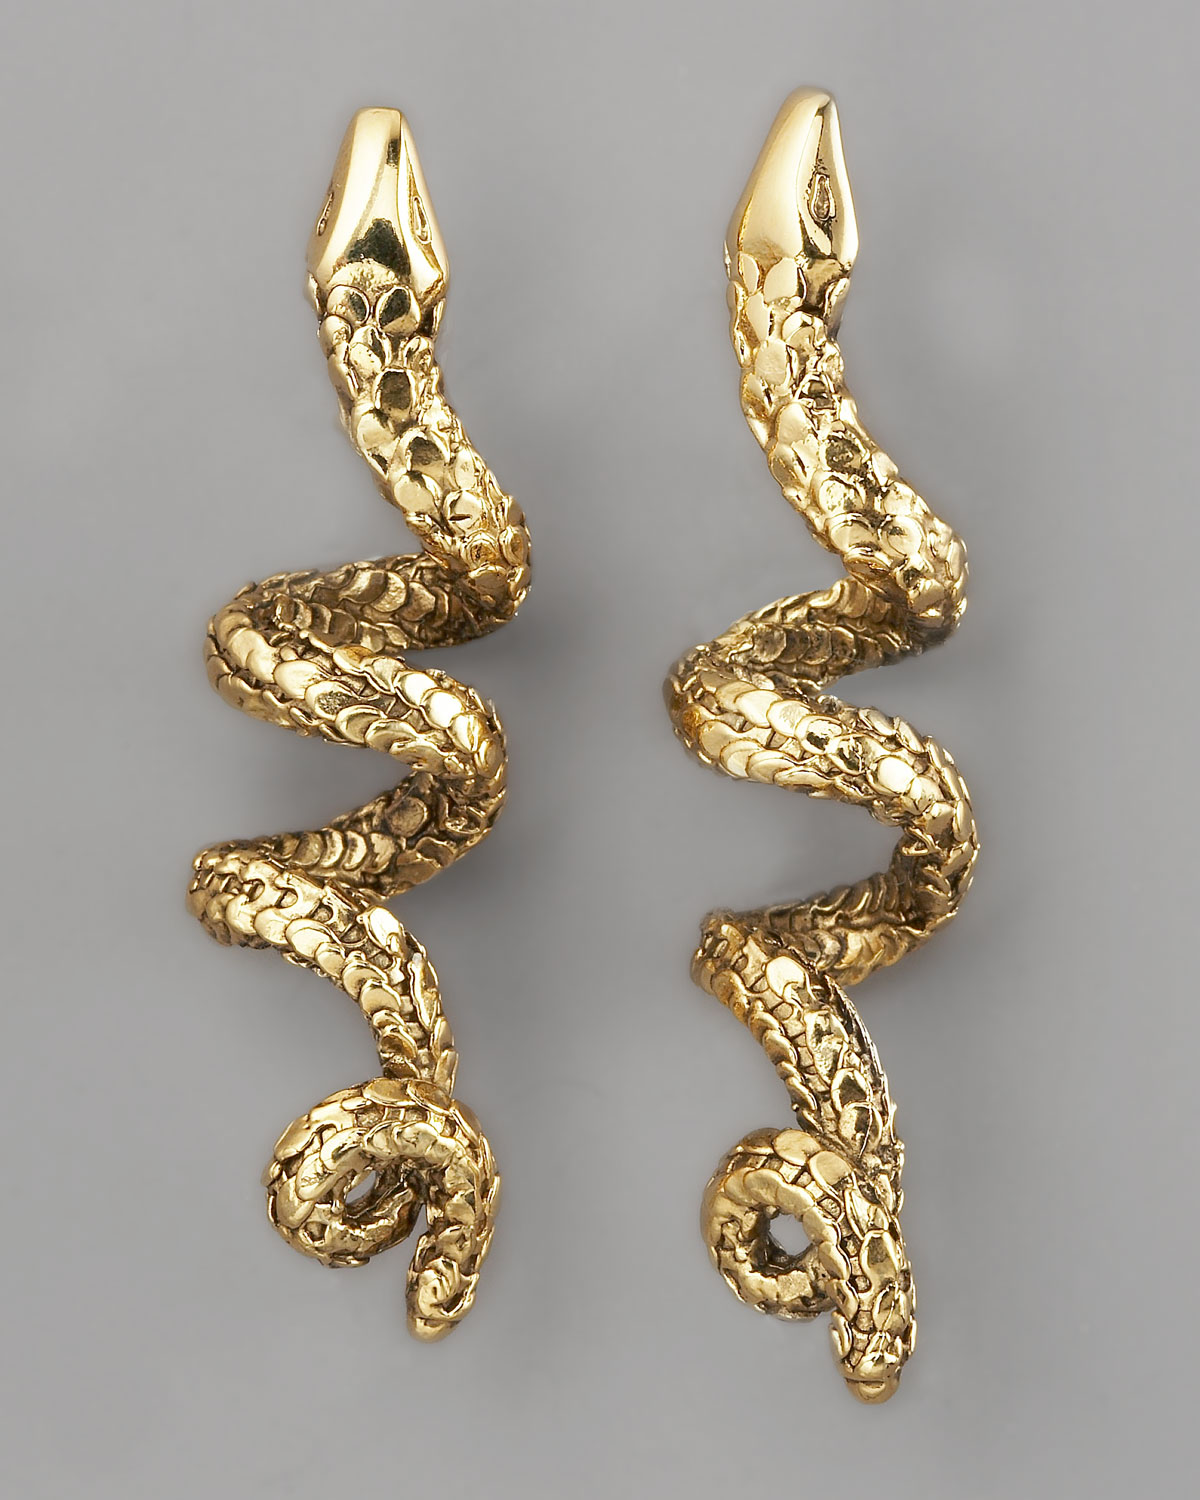 Lyst Aurelie Bidermann Coiled Snake Earrings in Metallic